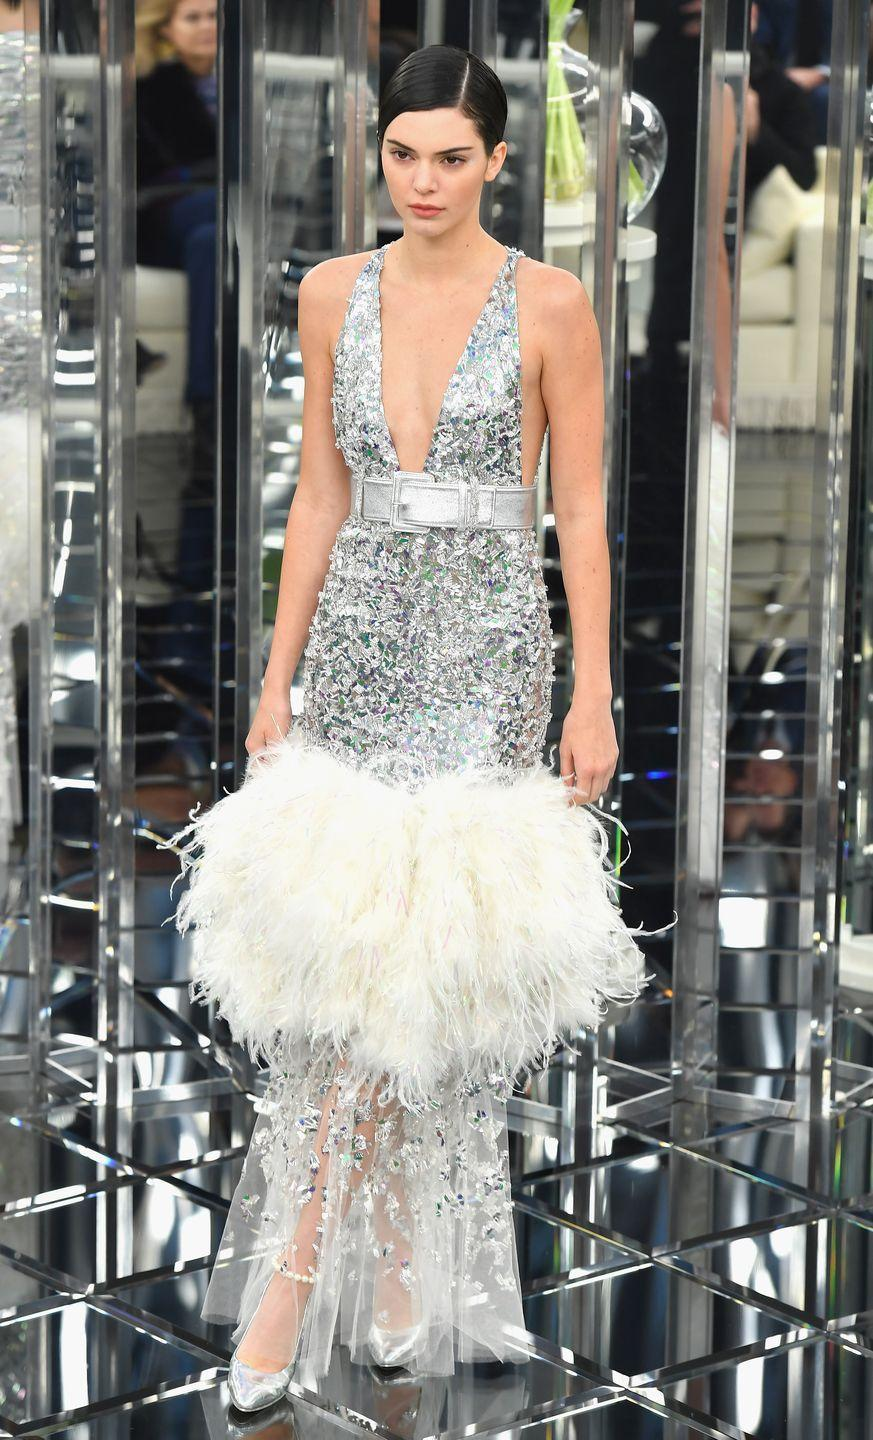 <p>In the most glitzy of all the Chanel haute couture gowns, sported by Lagerfeld's muses in Paris, January 2017</p>